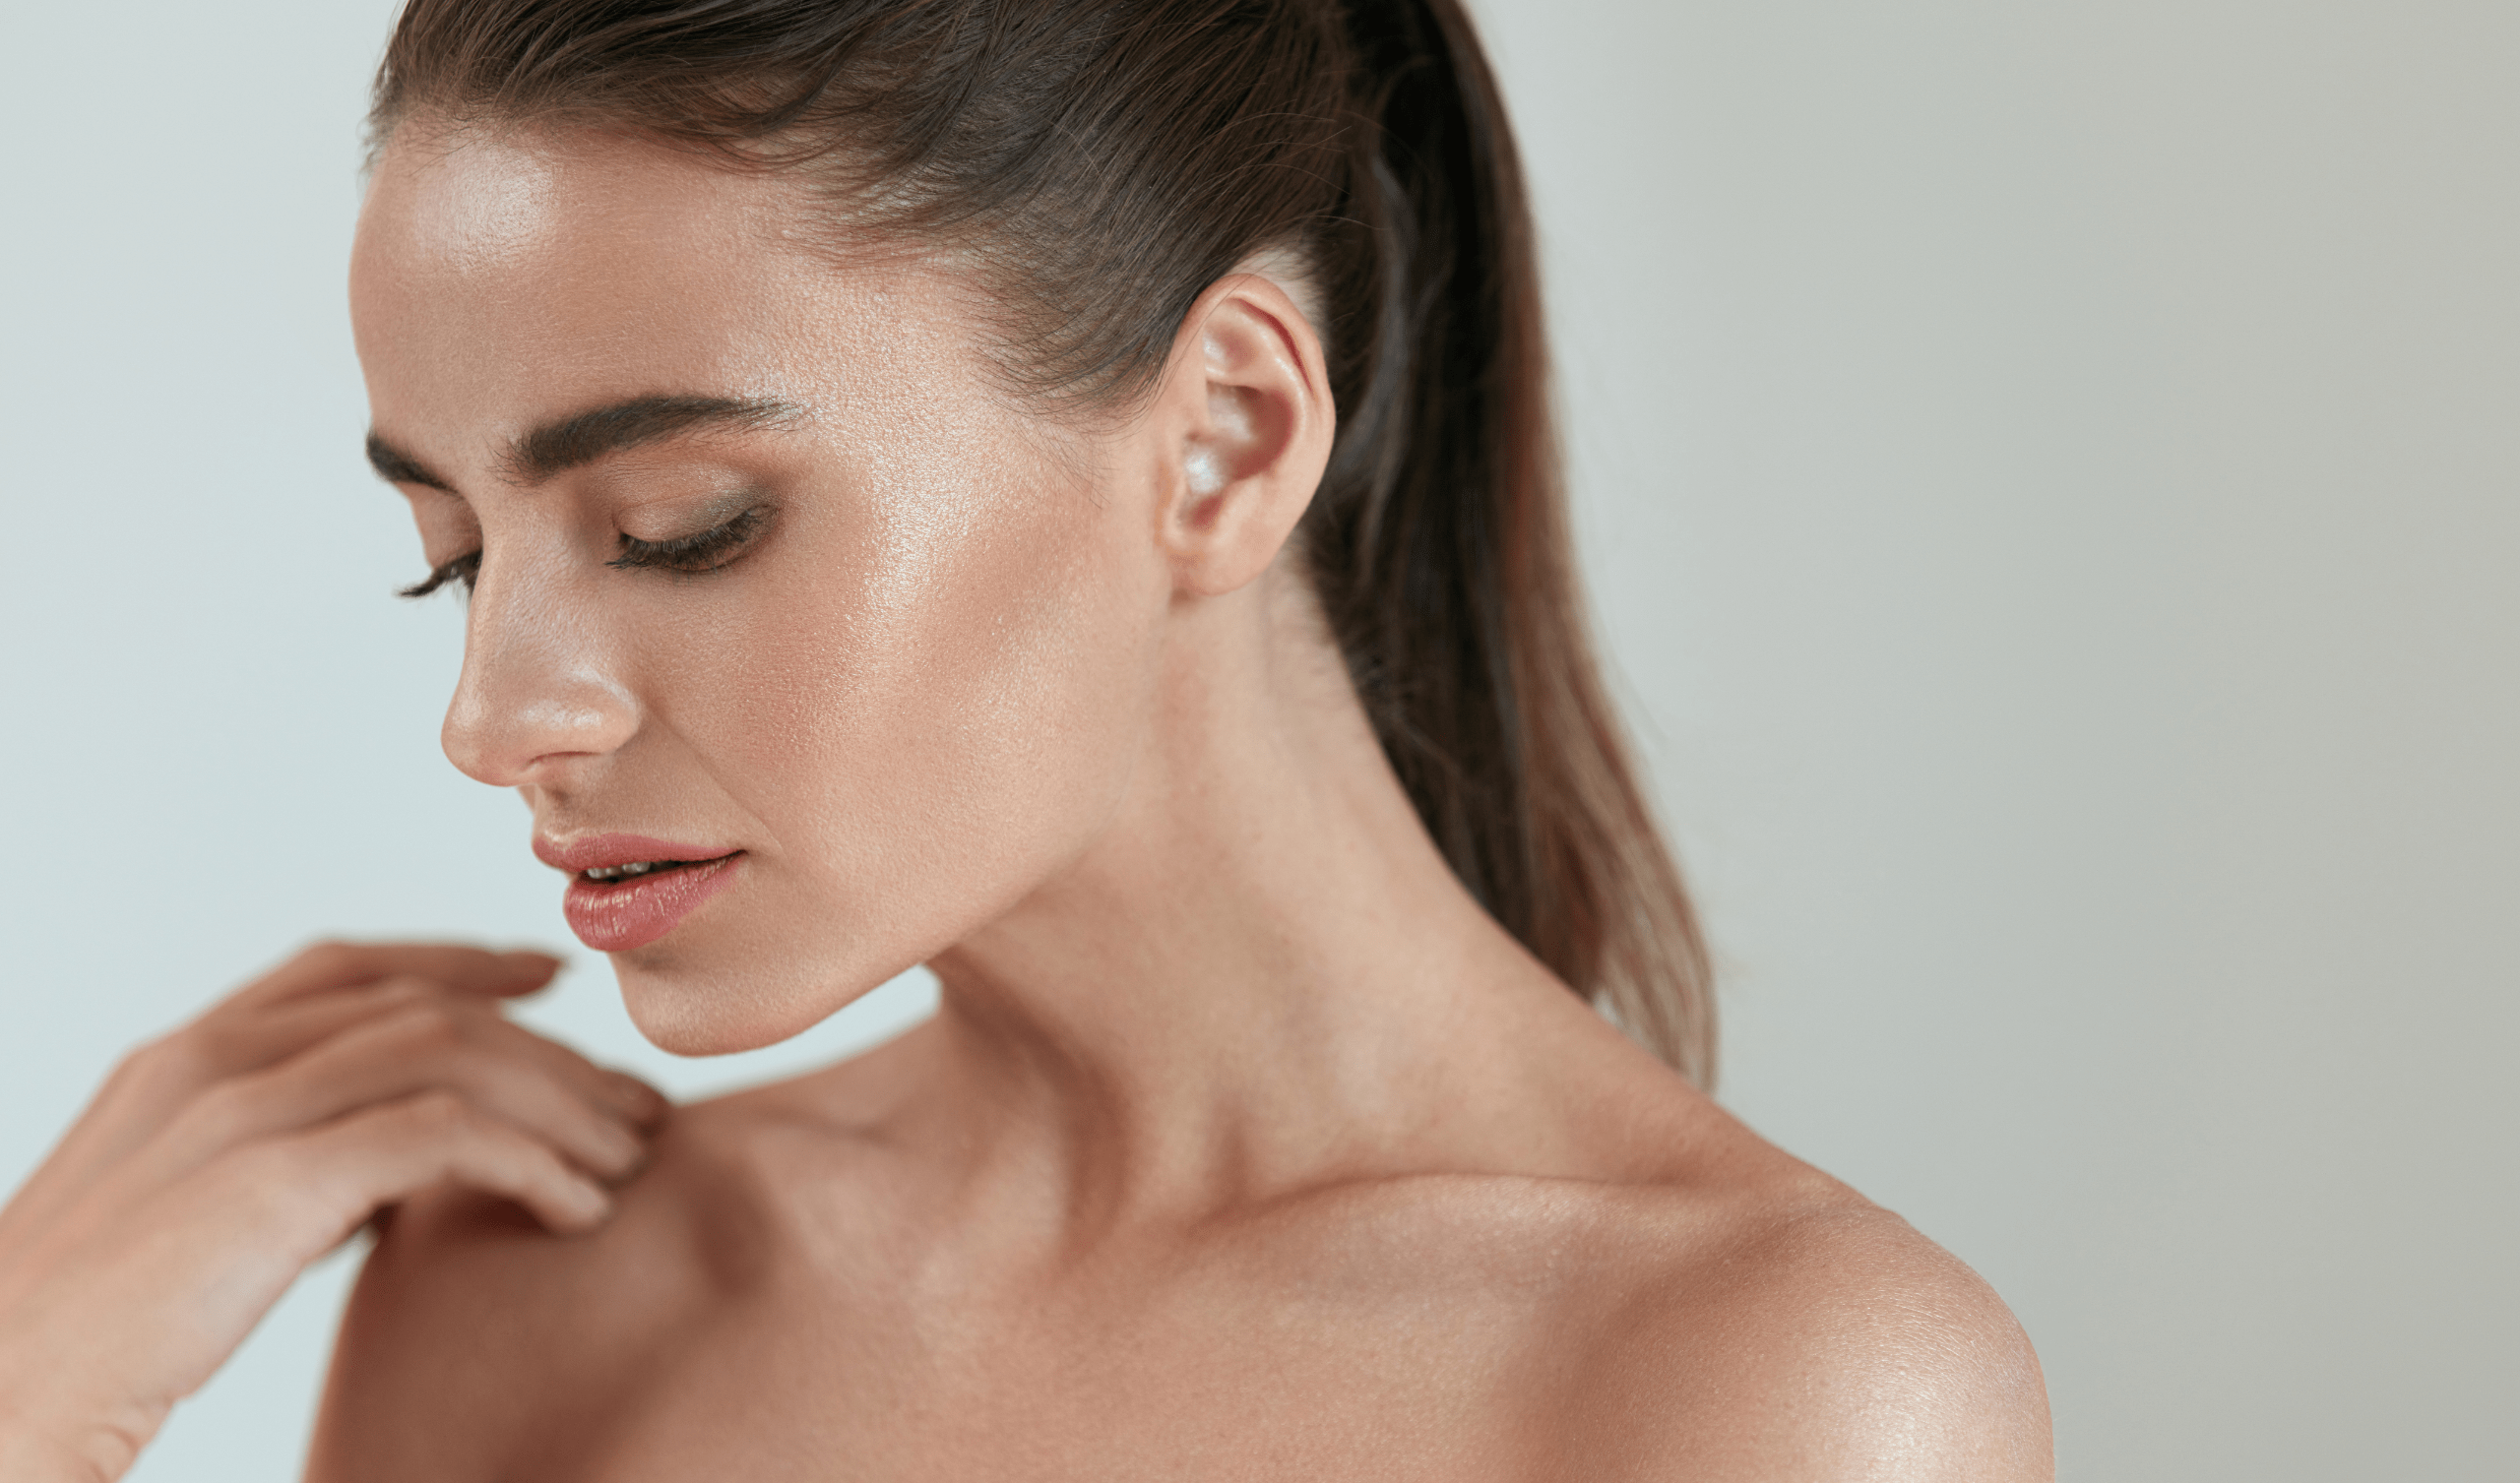 Wrinkle injectable treatment